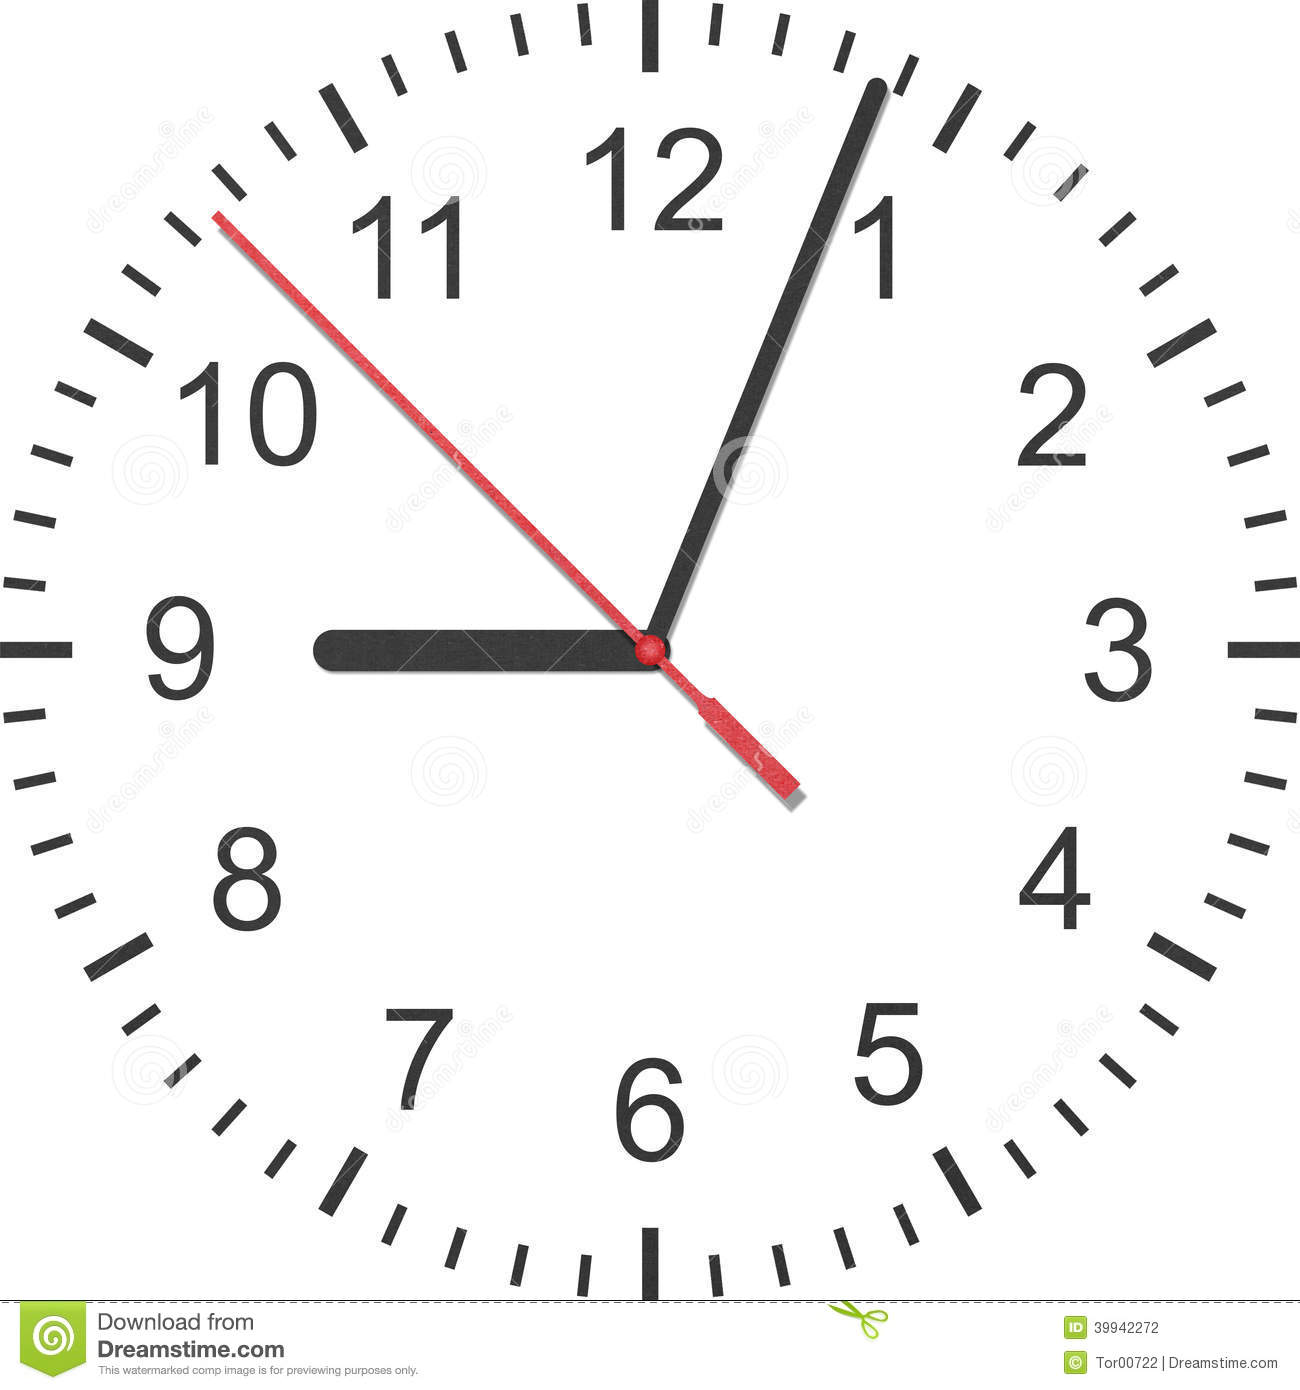 Paper Cut Of Time Clock, Watch Is Number With Hour Hand And Minu.